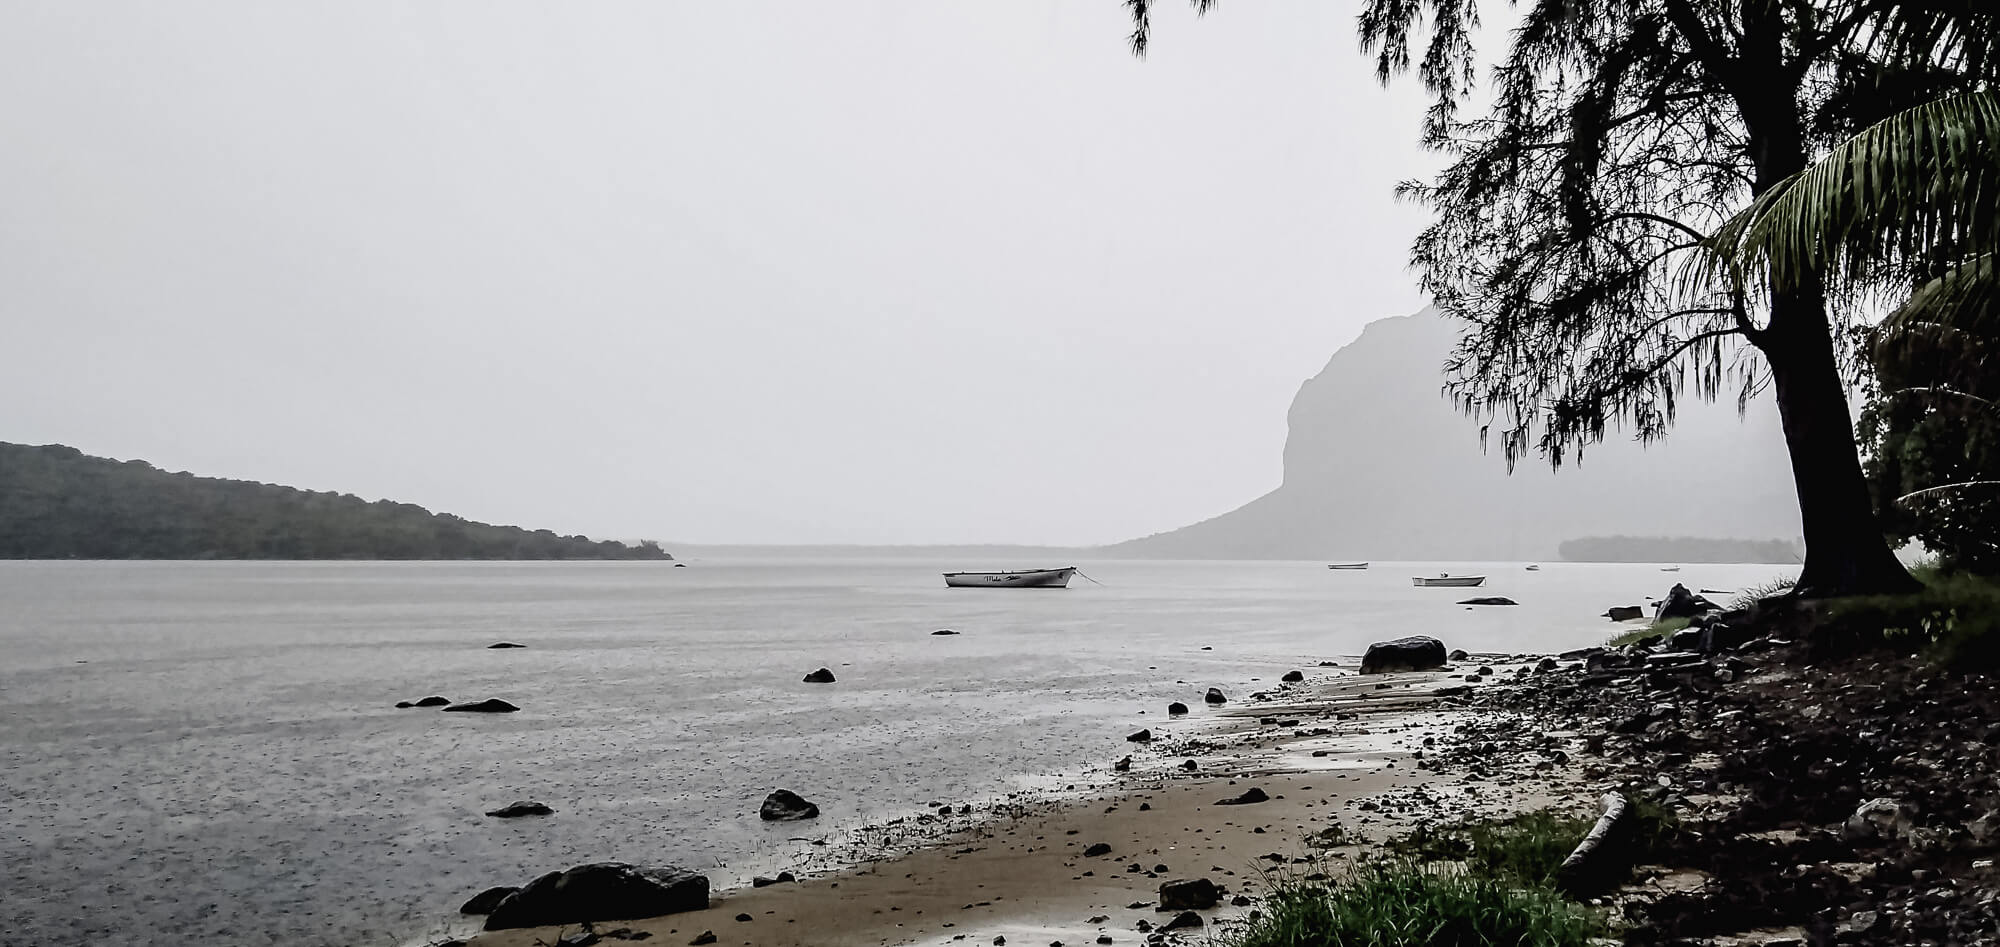 A misty Le Morne Mountain - a beautiful place in Mauritius despite the weather